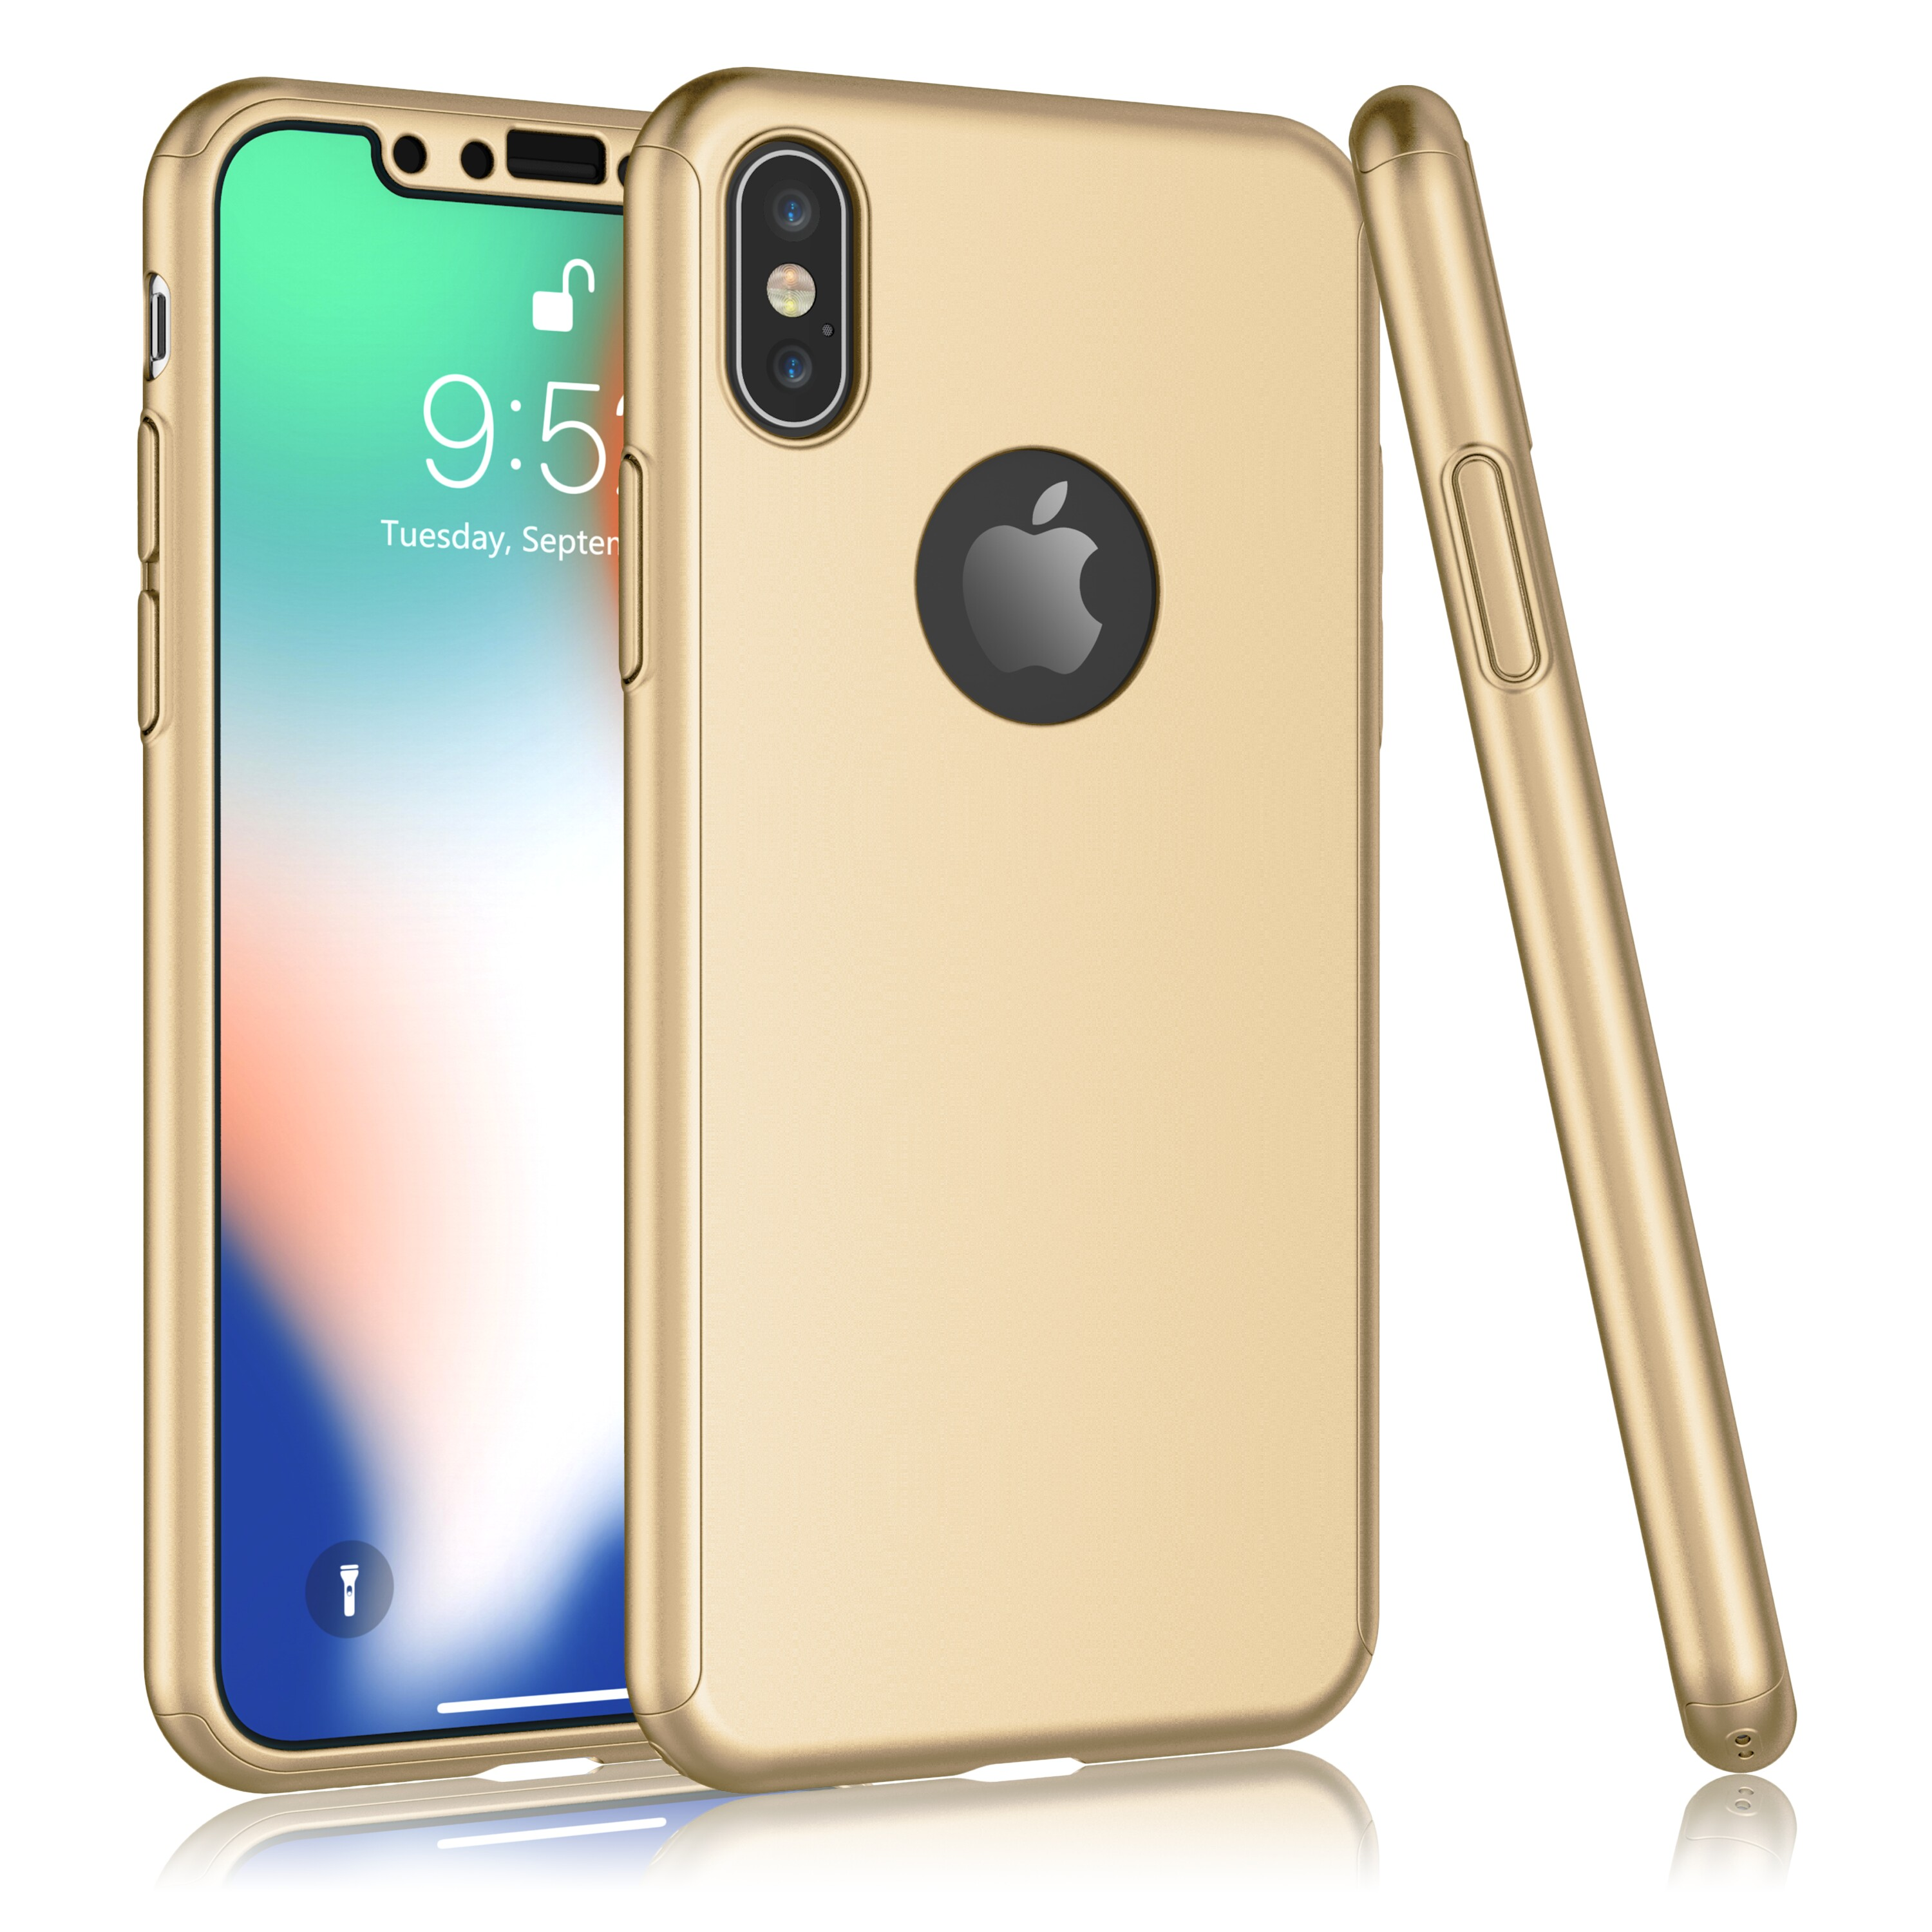 "2017 iPhone X Case, 2018 iPhone XS Case, Tekcoo [T360] Ultra Thin Full Body Protection Hard Slim Hybrid Cover Shell With Tempered Glass Screen Protector For 5.8"" iPhone X / XS -Gold"